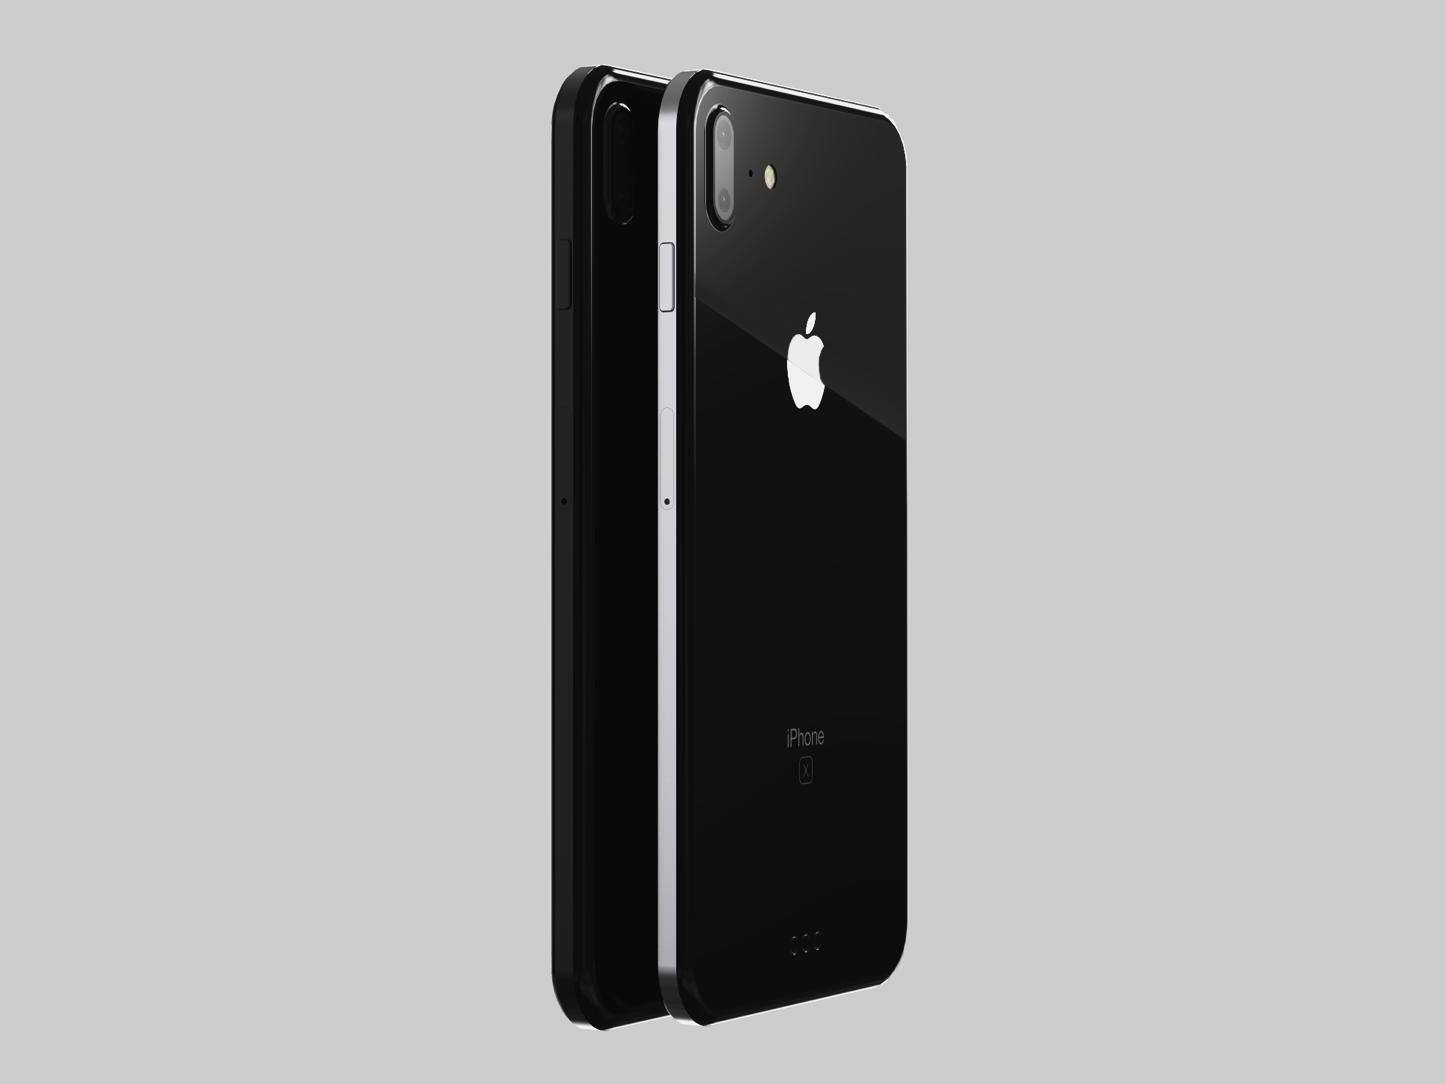 iphone-8-x-edition-1.png